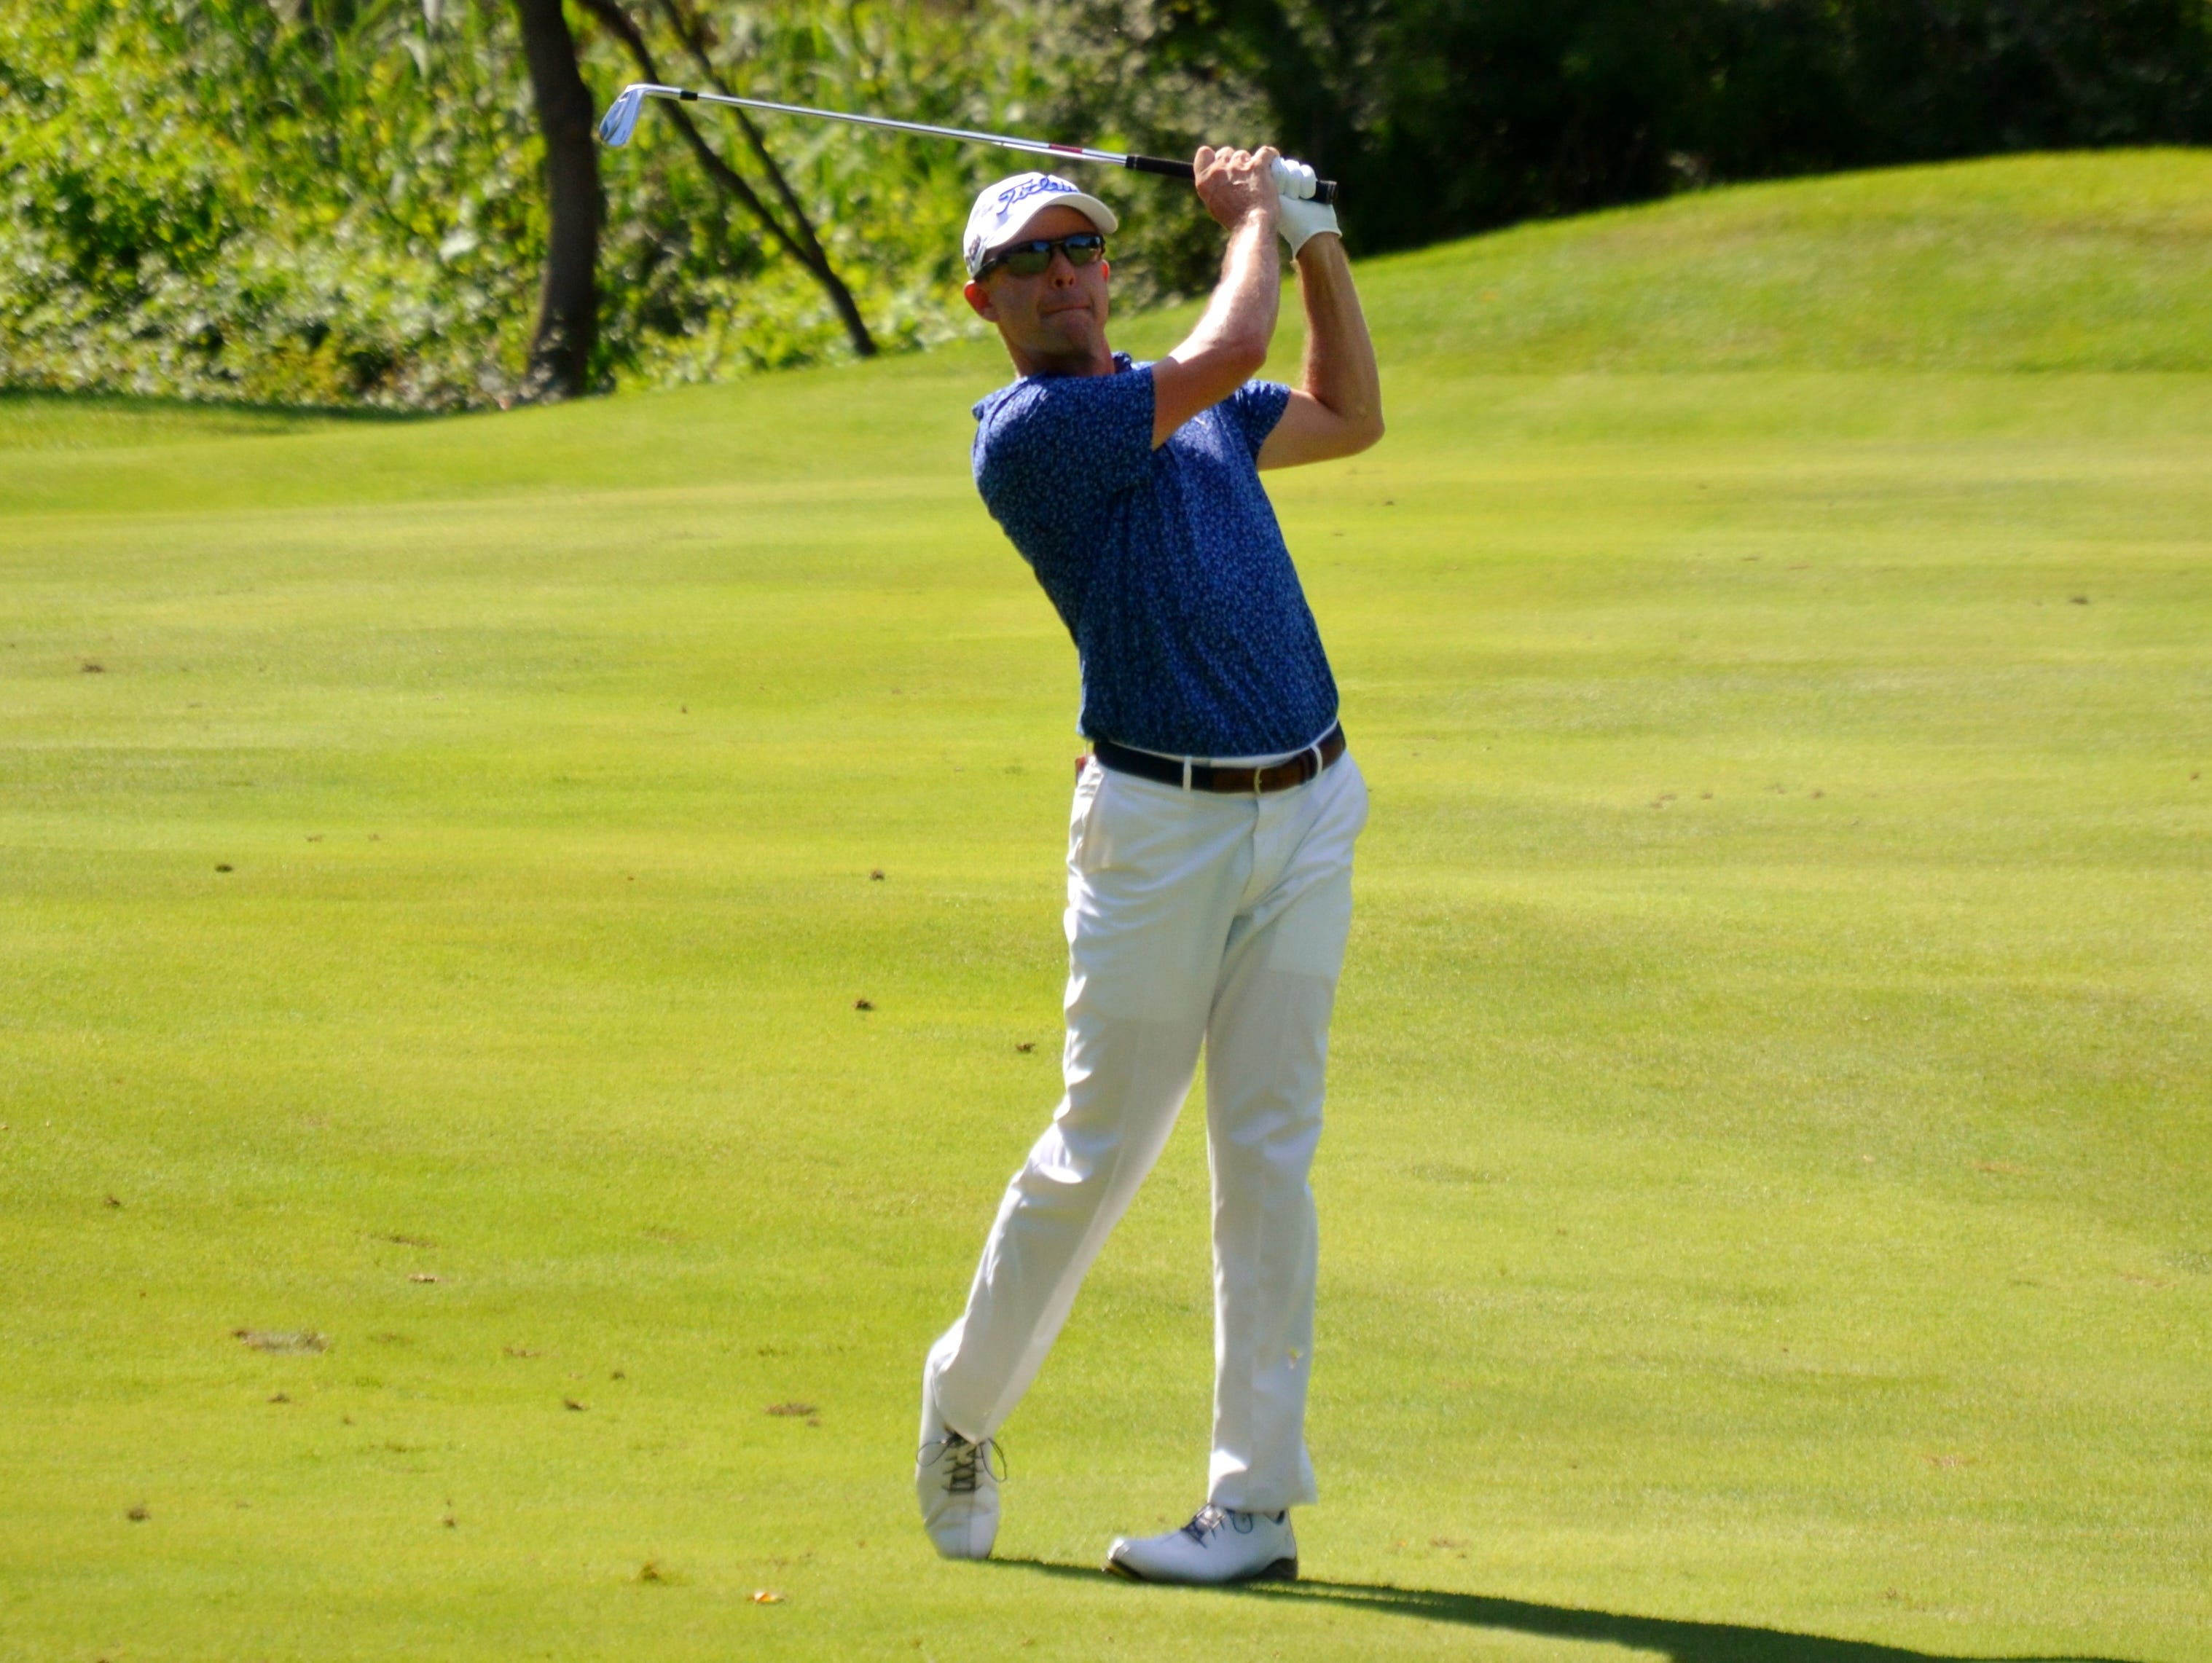 GlenArbor director of golf Rob Labritz opened the 94th Westchester Open with a 7-under 65 on his home course. He is one shot off the lead heading into the final 36 holes on Wednesday.